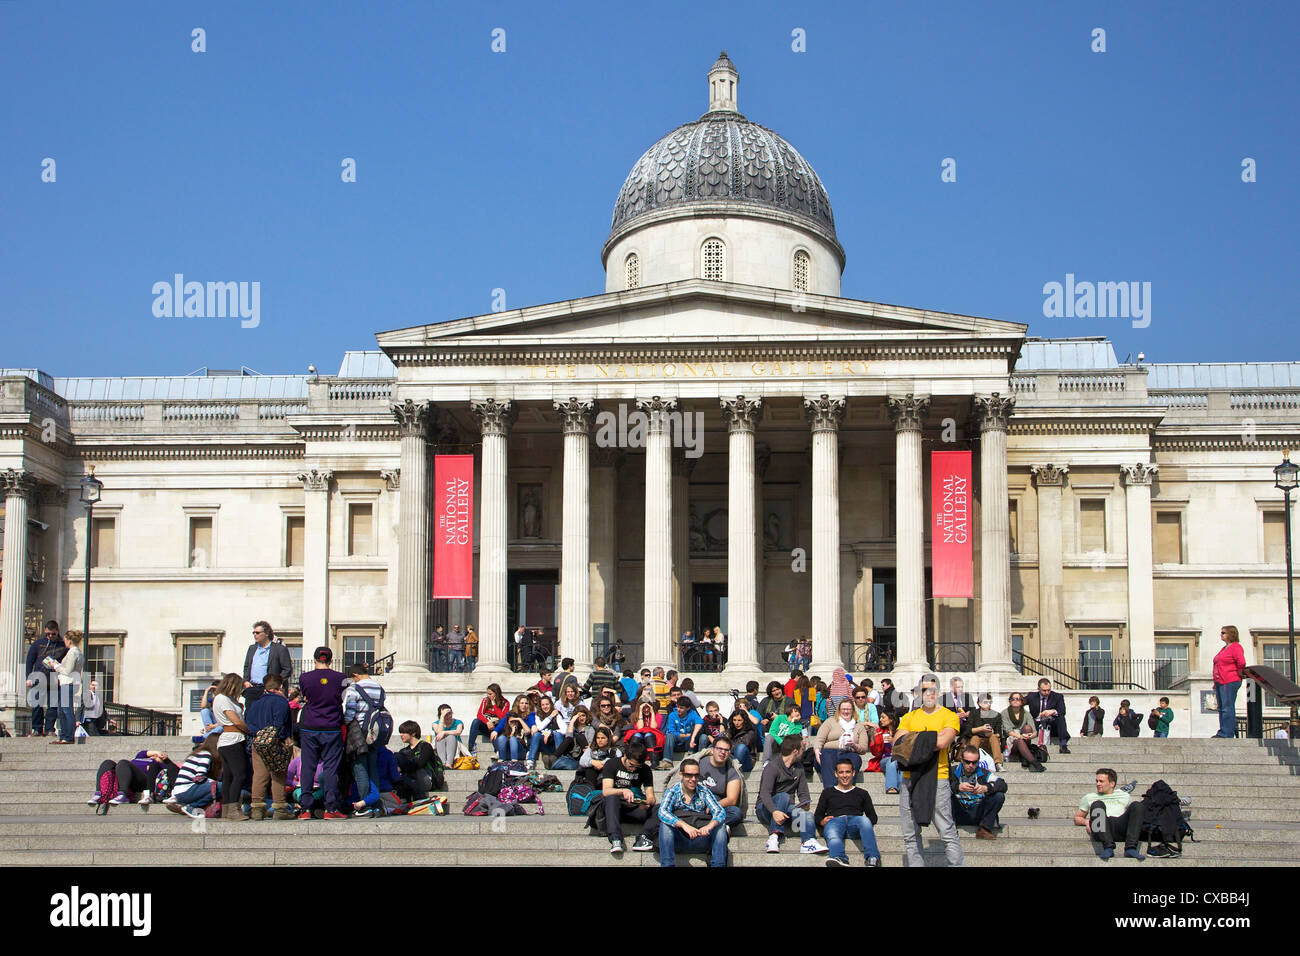 Visitors and tourists outside the National Gallery, Trafalgar Square, London, England, United Kingdom, Europe Stock Photo